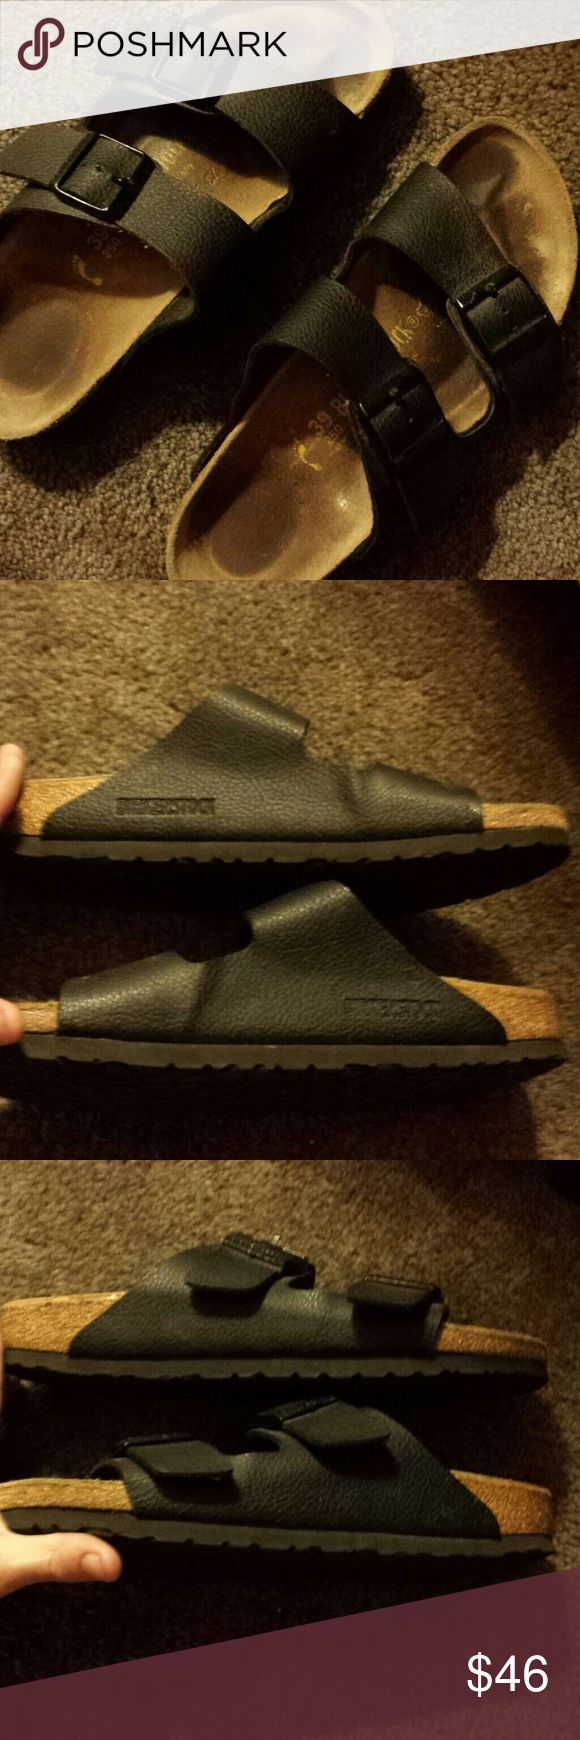 Birkenstocks Size 8.5/9 I bought two pairs of Birkenstocks 4 years ago and fell in love with a pair that I wear constantly. I never wear these. I think I've worn them 5/6 times. They are in like-new condition! Just see the pics. Not even a scuff. No trades on this item, thanks for not asking and 4 understanding. Reasonable offers only.  Thanks for browsing my closet! Birkenstock Shoes Sandals